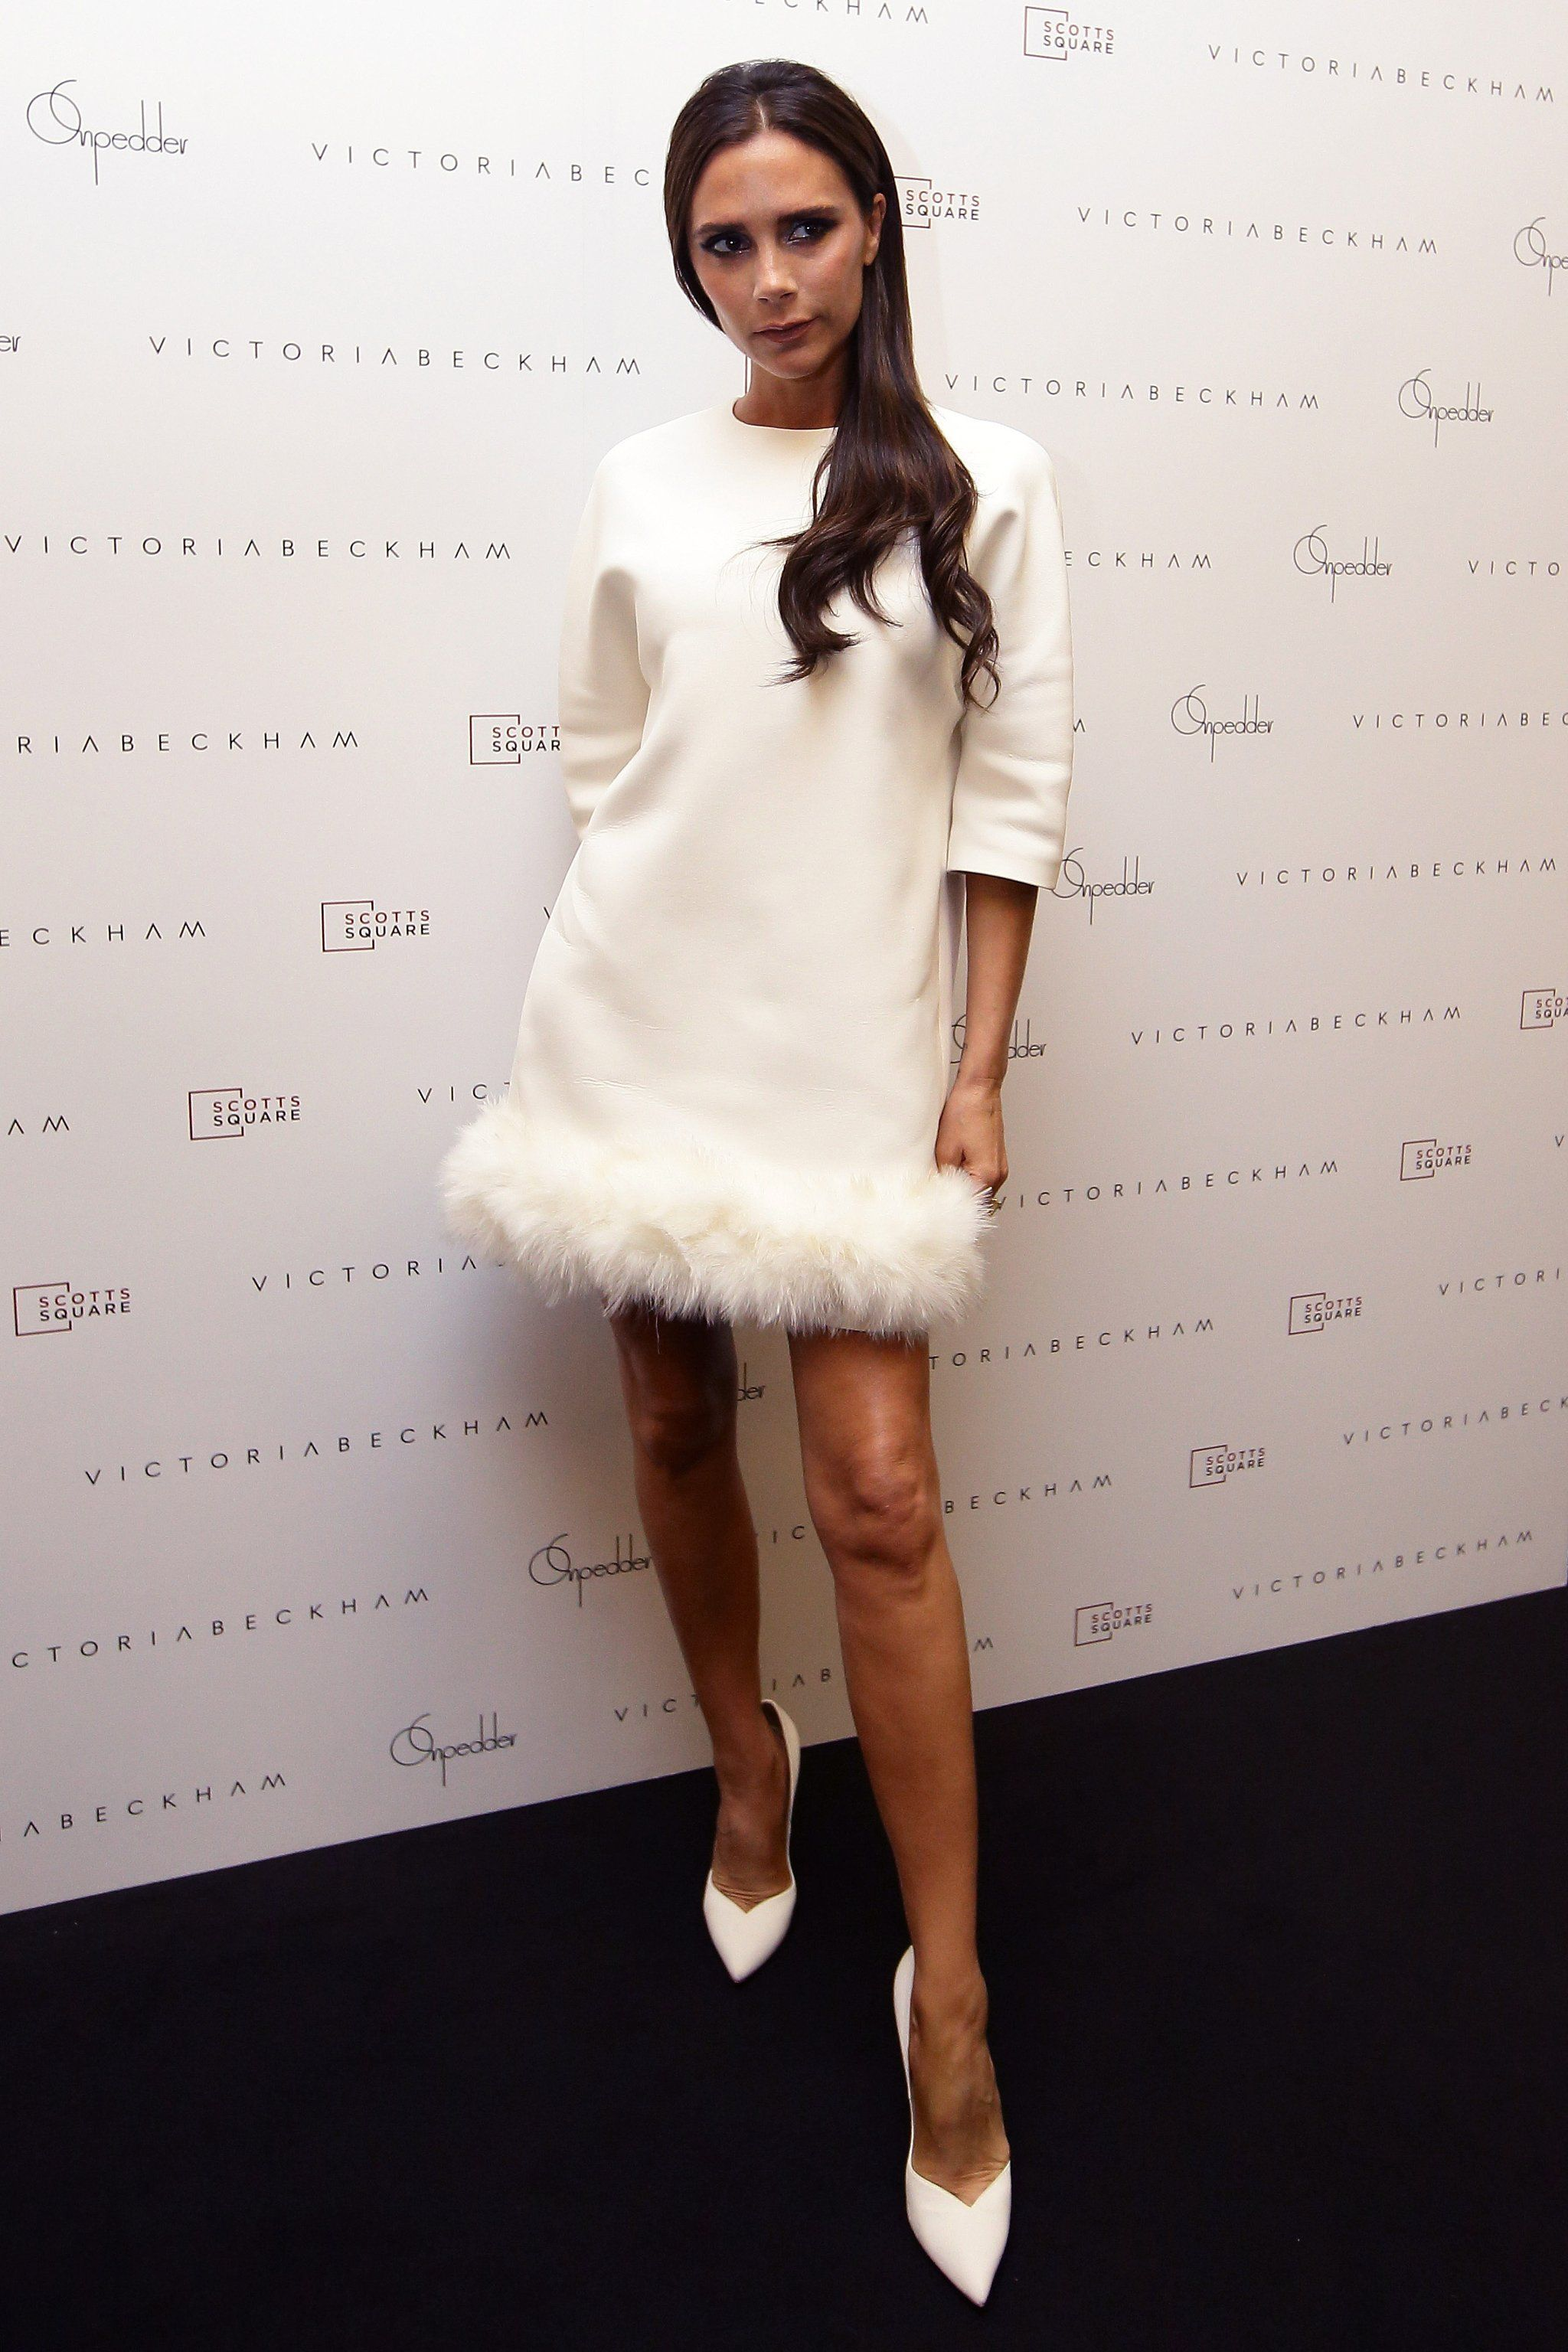 A Flirty Party Dress Is Practically An Essential Victoria Beckham Style White Feather Dress Little White Dresses [ 3072 x 2048 Pixel ]